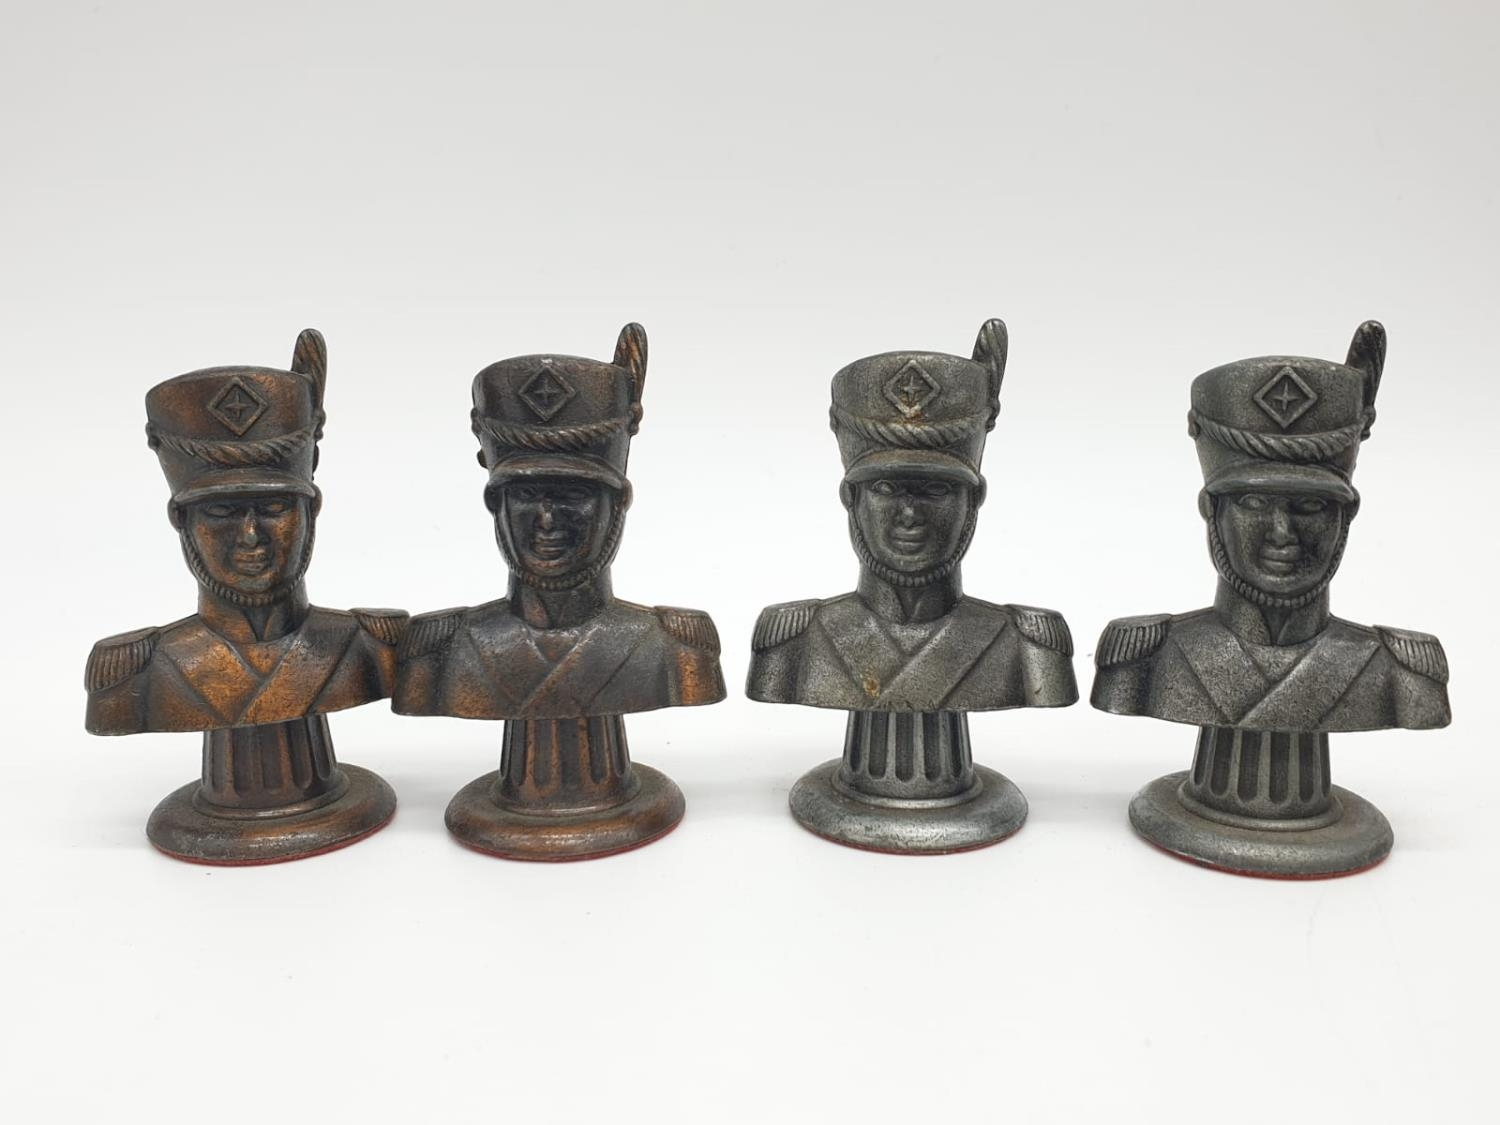 Metal CHESS SET Napoleonic Themed pieces. Napoleon 7.5 cm tall. Play on a square 3.5 cm. - Image 6 of 38